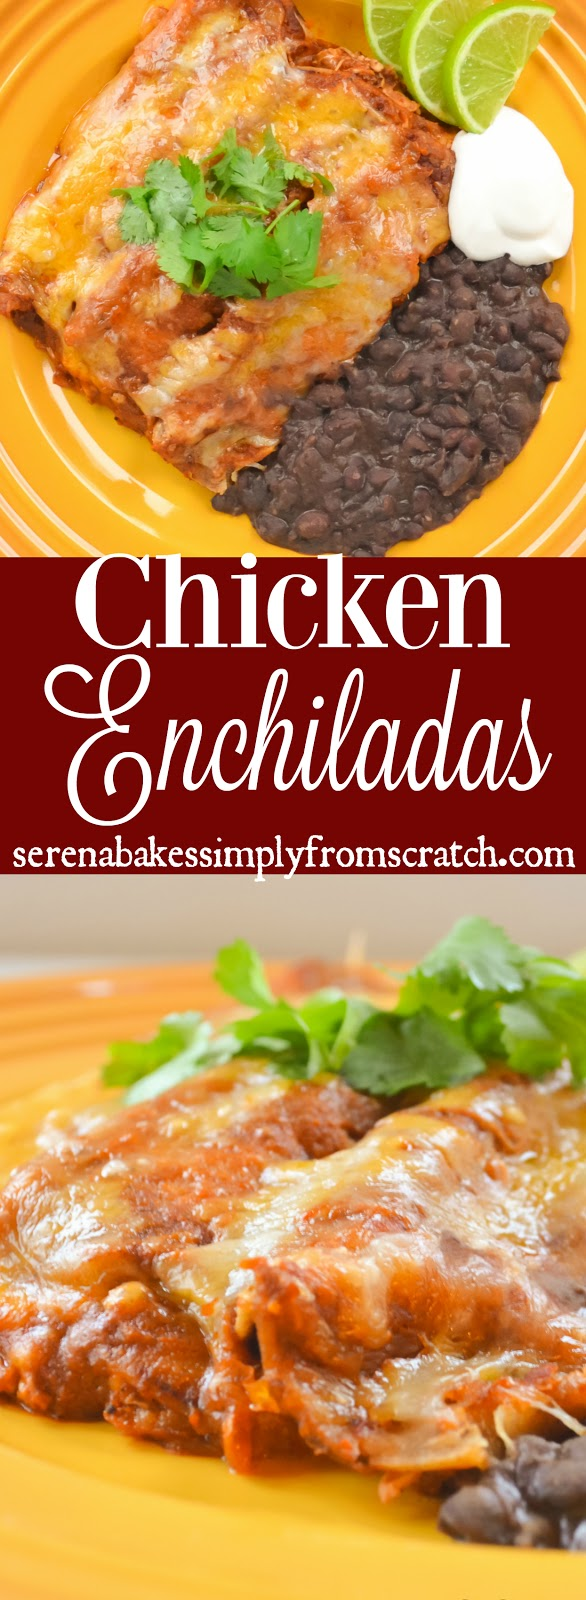 The BEST Homemade Chicken Enchiladas from scratch! serenabakessimplyfromscratch.com